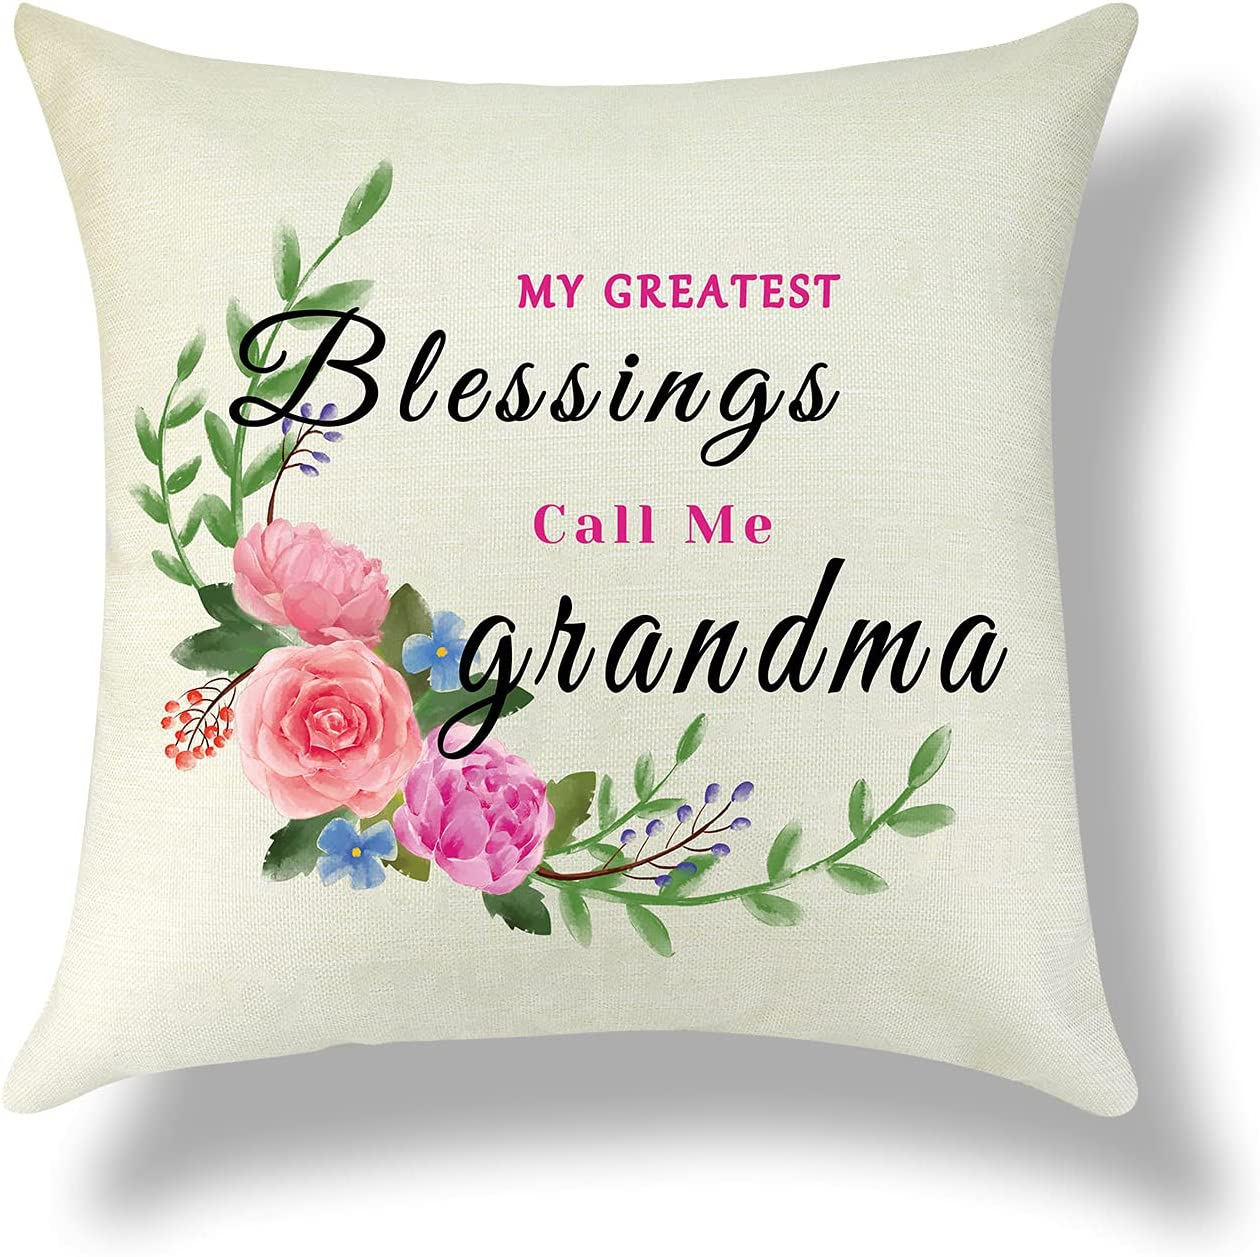 Grandmother Pillow Cover Grandma Gift Cushion Cover Cotton Linen Home Decor Sofa Throw Pillow Cover Grandmother Gift from Grandchildren Pillowcase Christmas Birthday Thanksgiving Gifts for Her 18